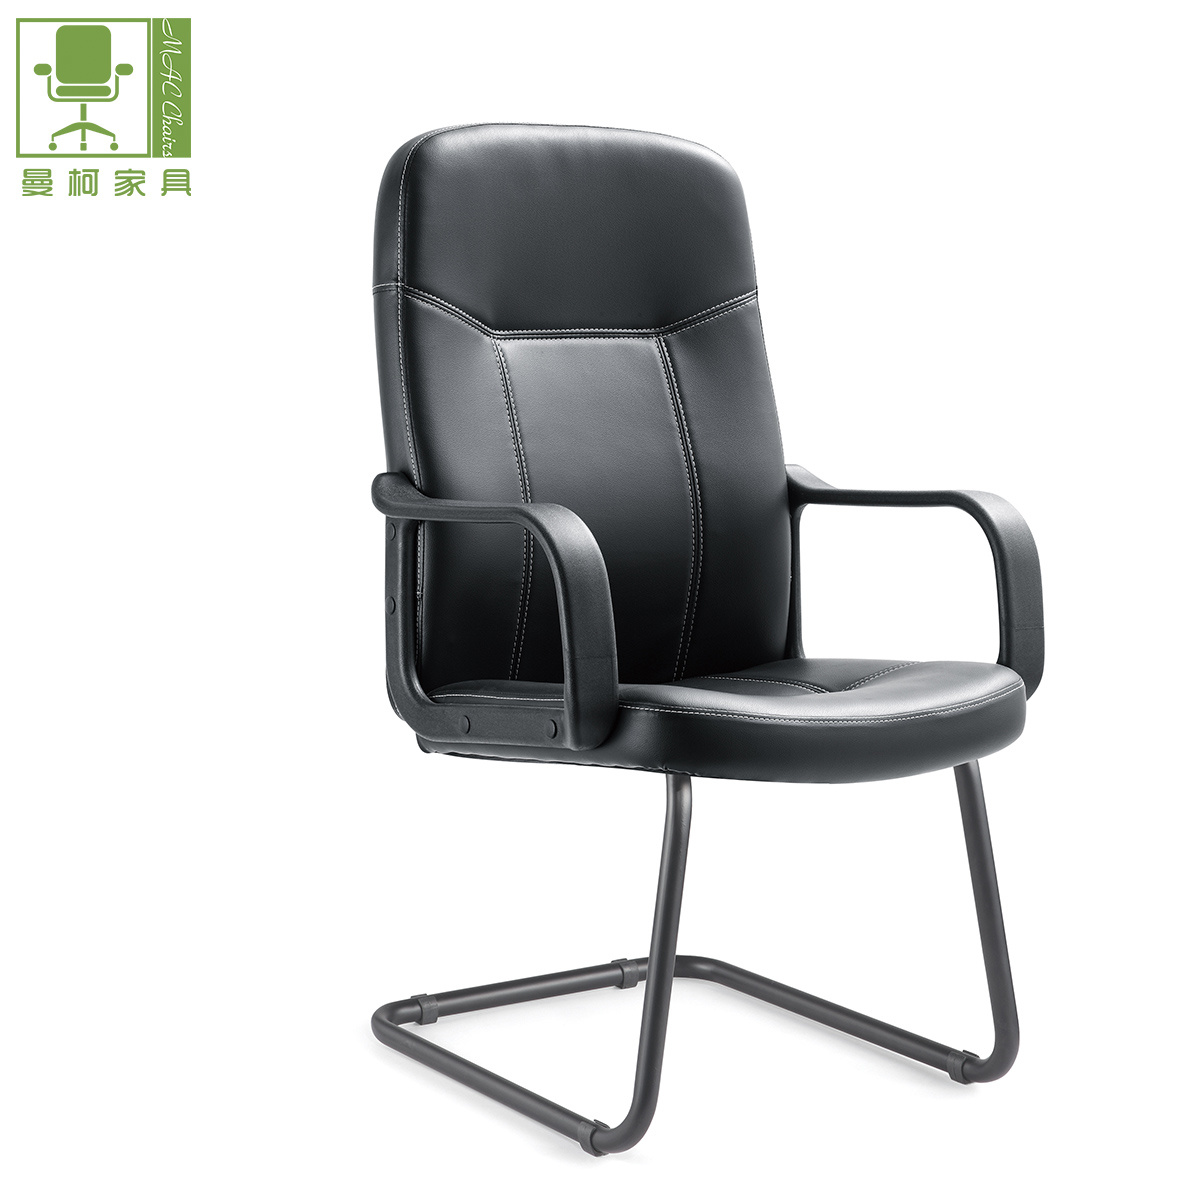 Magnificent Hot Item Black Color Modern Pu Leather Mid Back Office Visitor Chair Machost Co Dining Chair Design Ideas Machostcouk